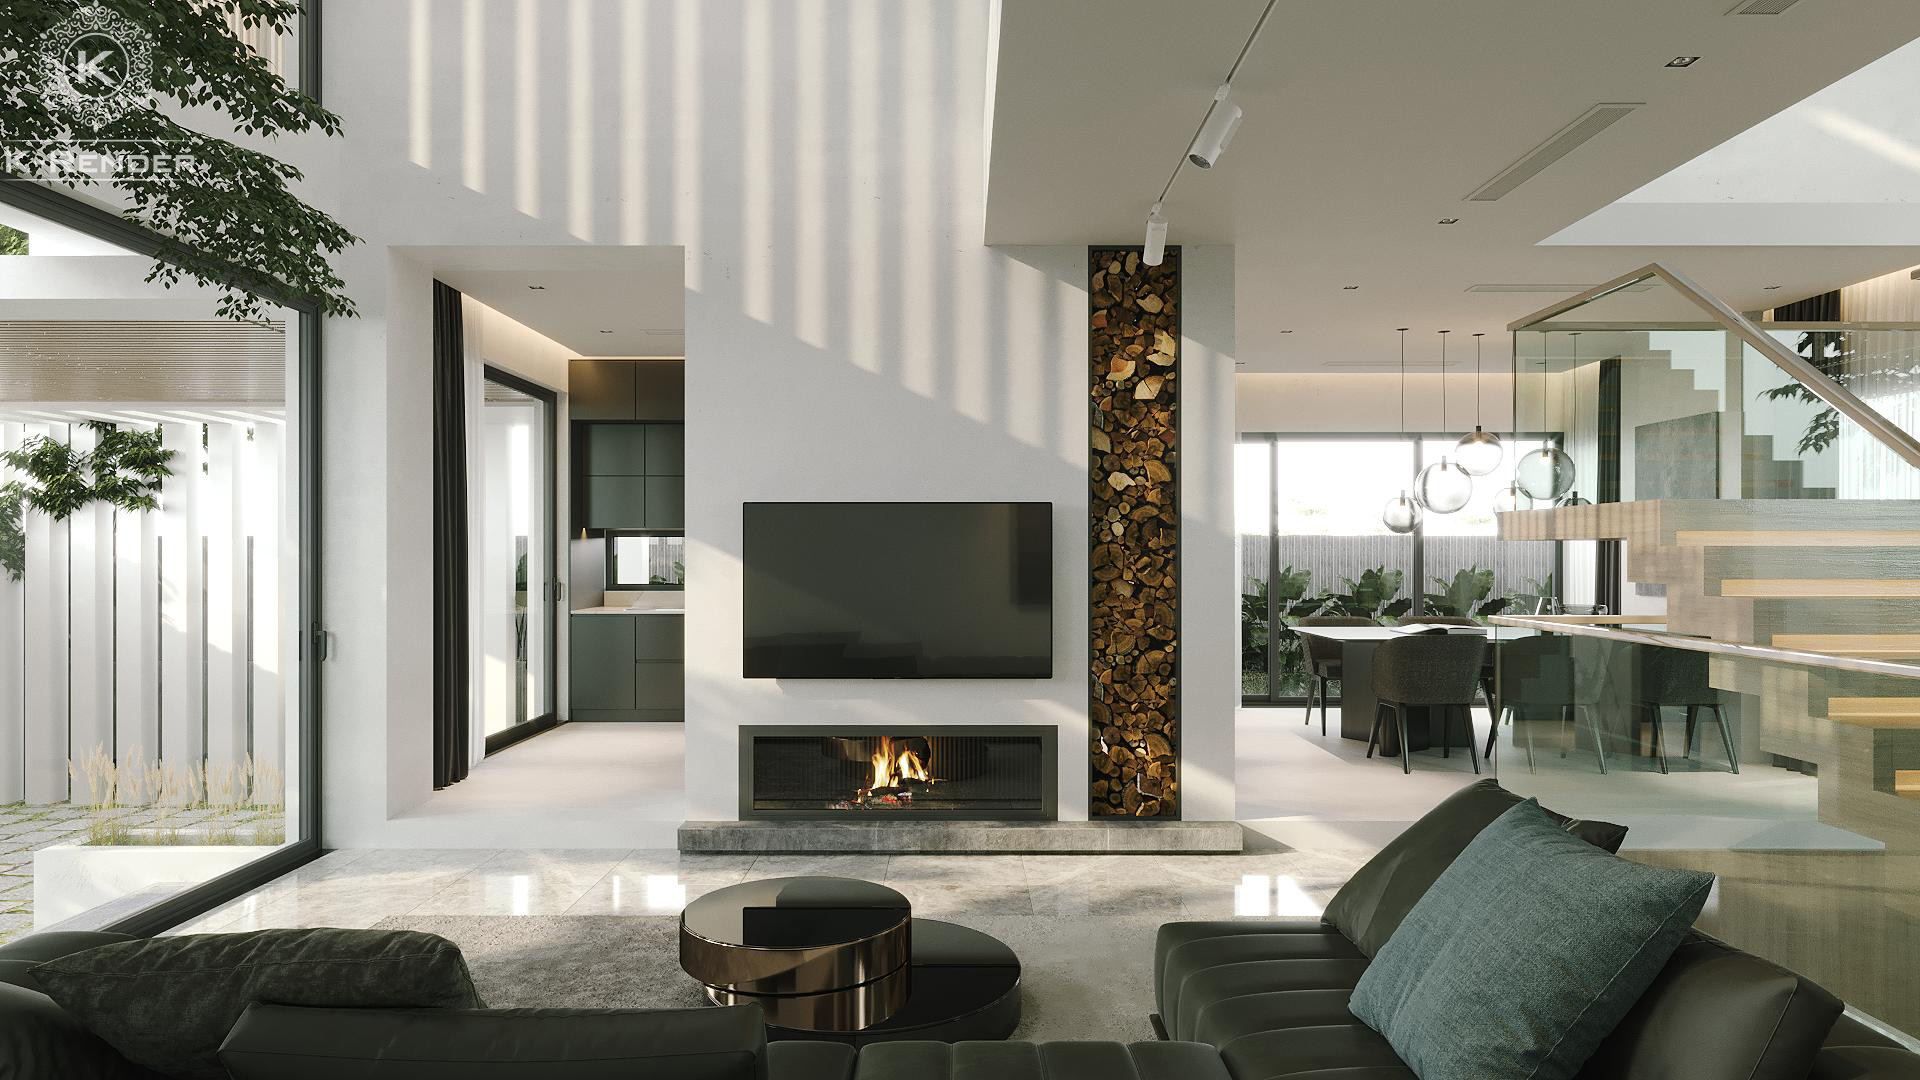 An-example-of-interior-one-of-the-types-of-architectural-renderings